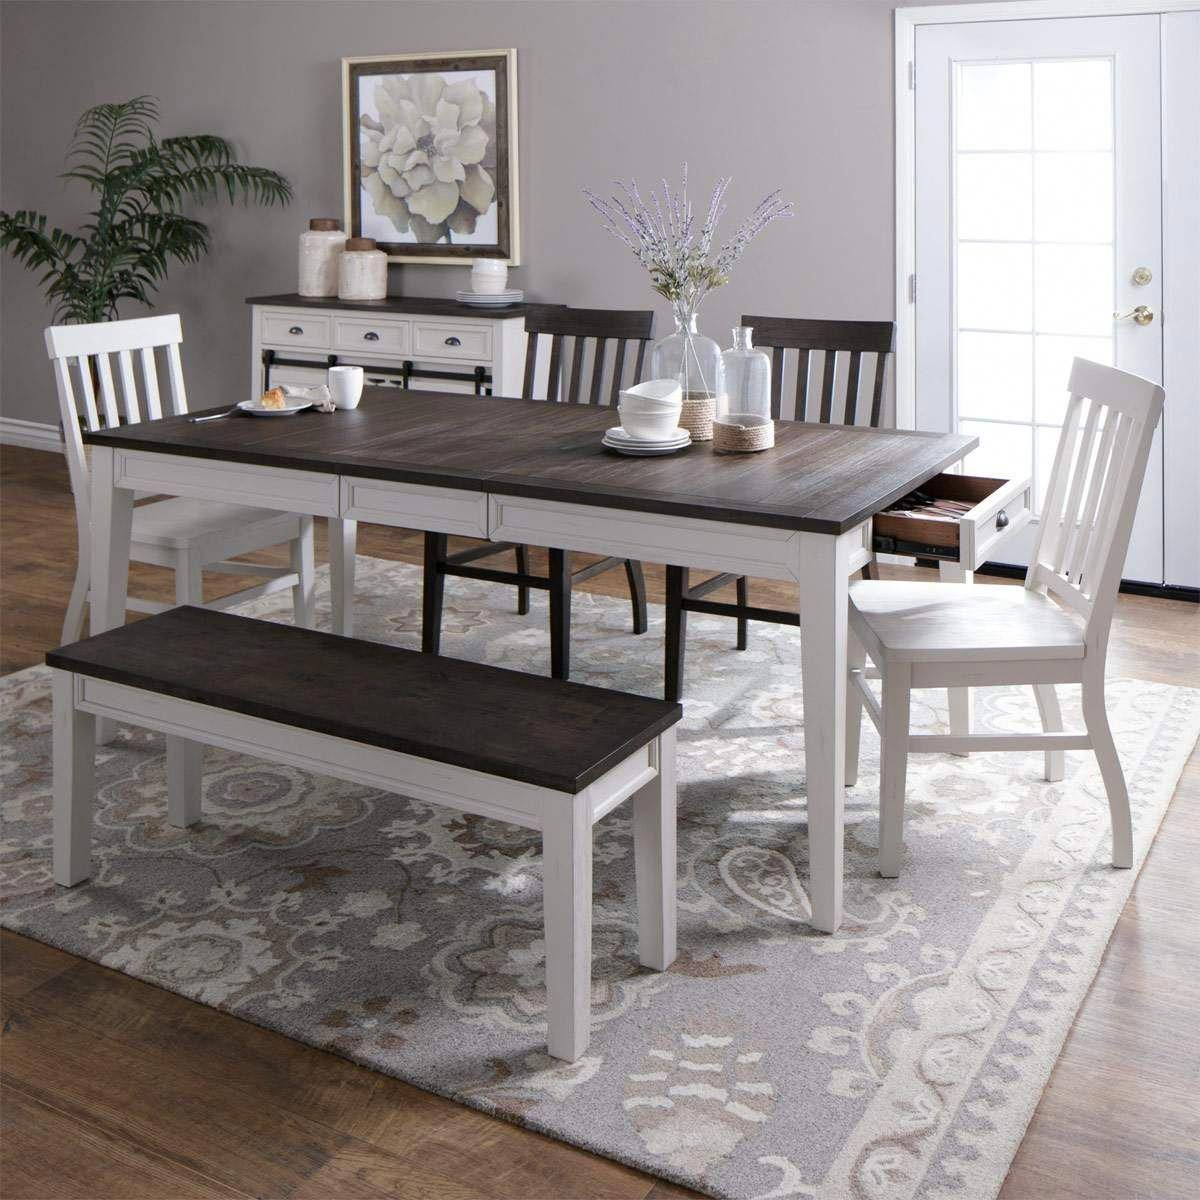 Accommodate a growing family or added guests with the Gramercy two-tone dining table. The 16